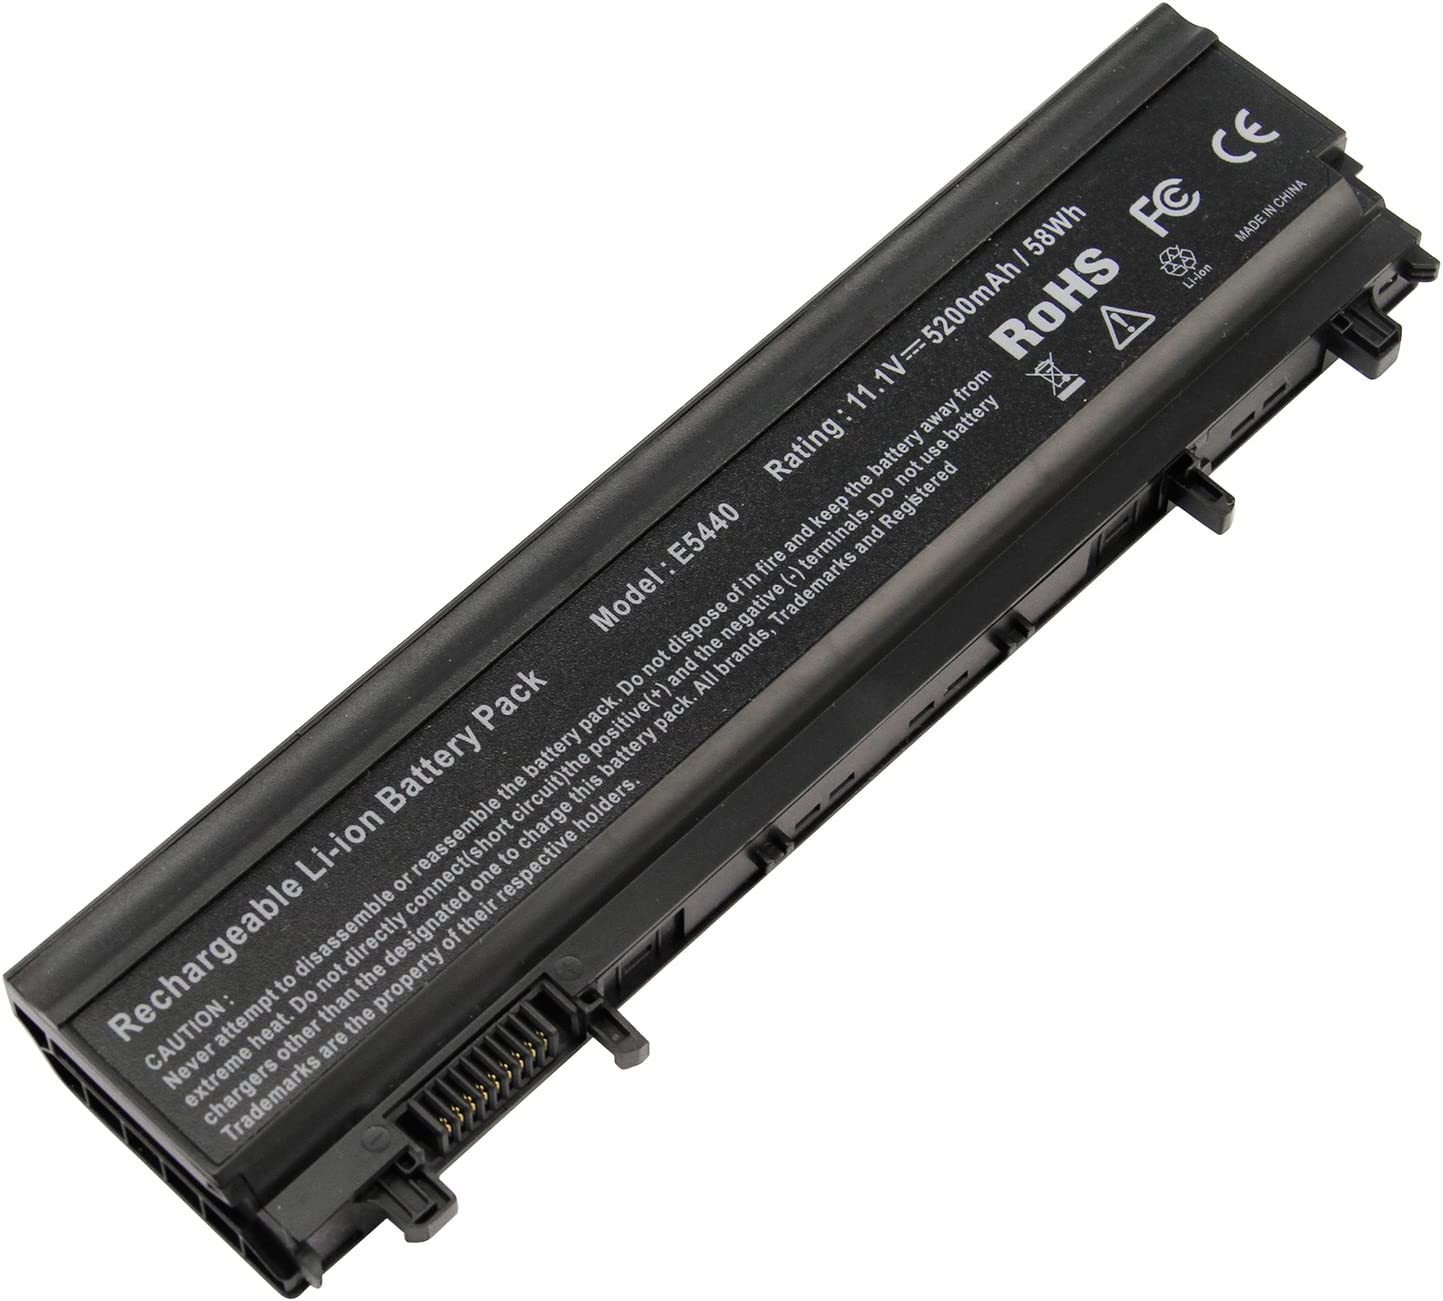 AC Doctor INC Laptop Battery for Dell Latitude 14 15 5000 E5440 E5540 Series M7T5F VV0NF FT6D9 3K7J7 5200mAh 11.1V Replacement